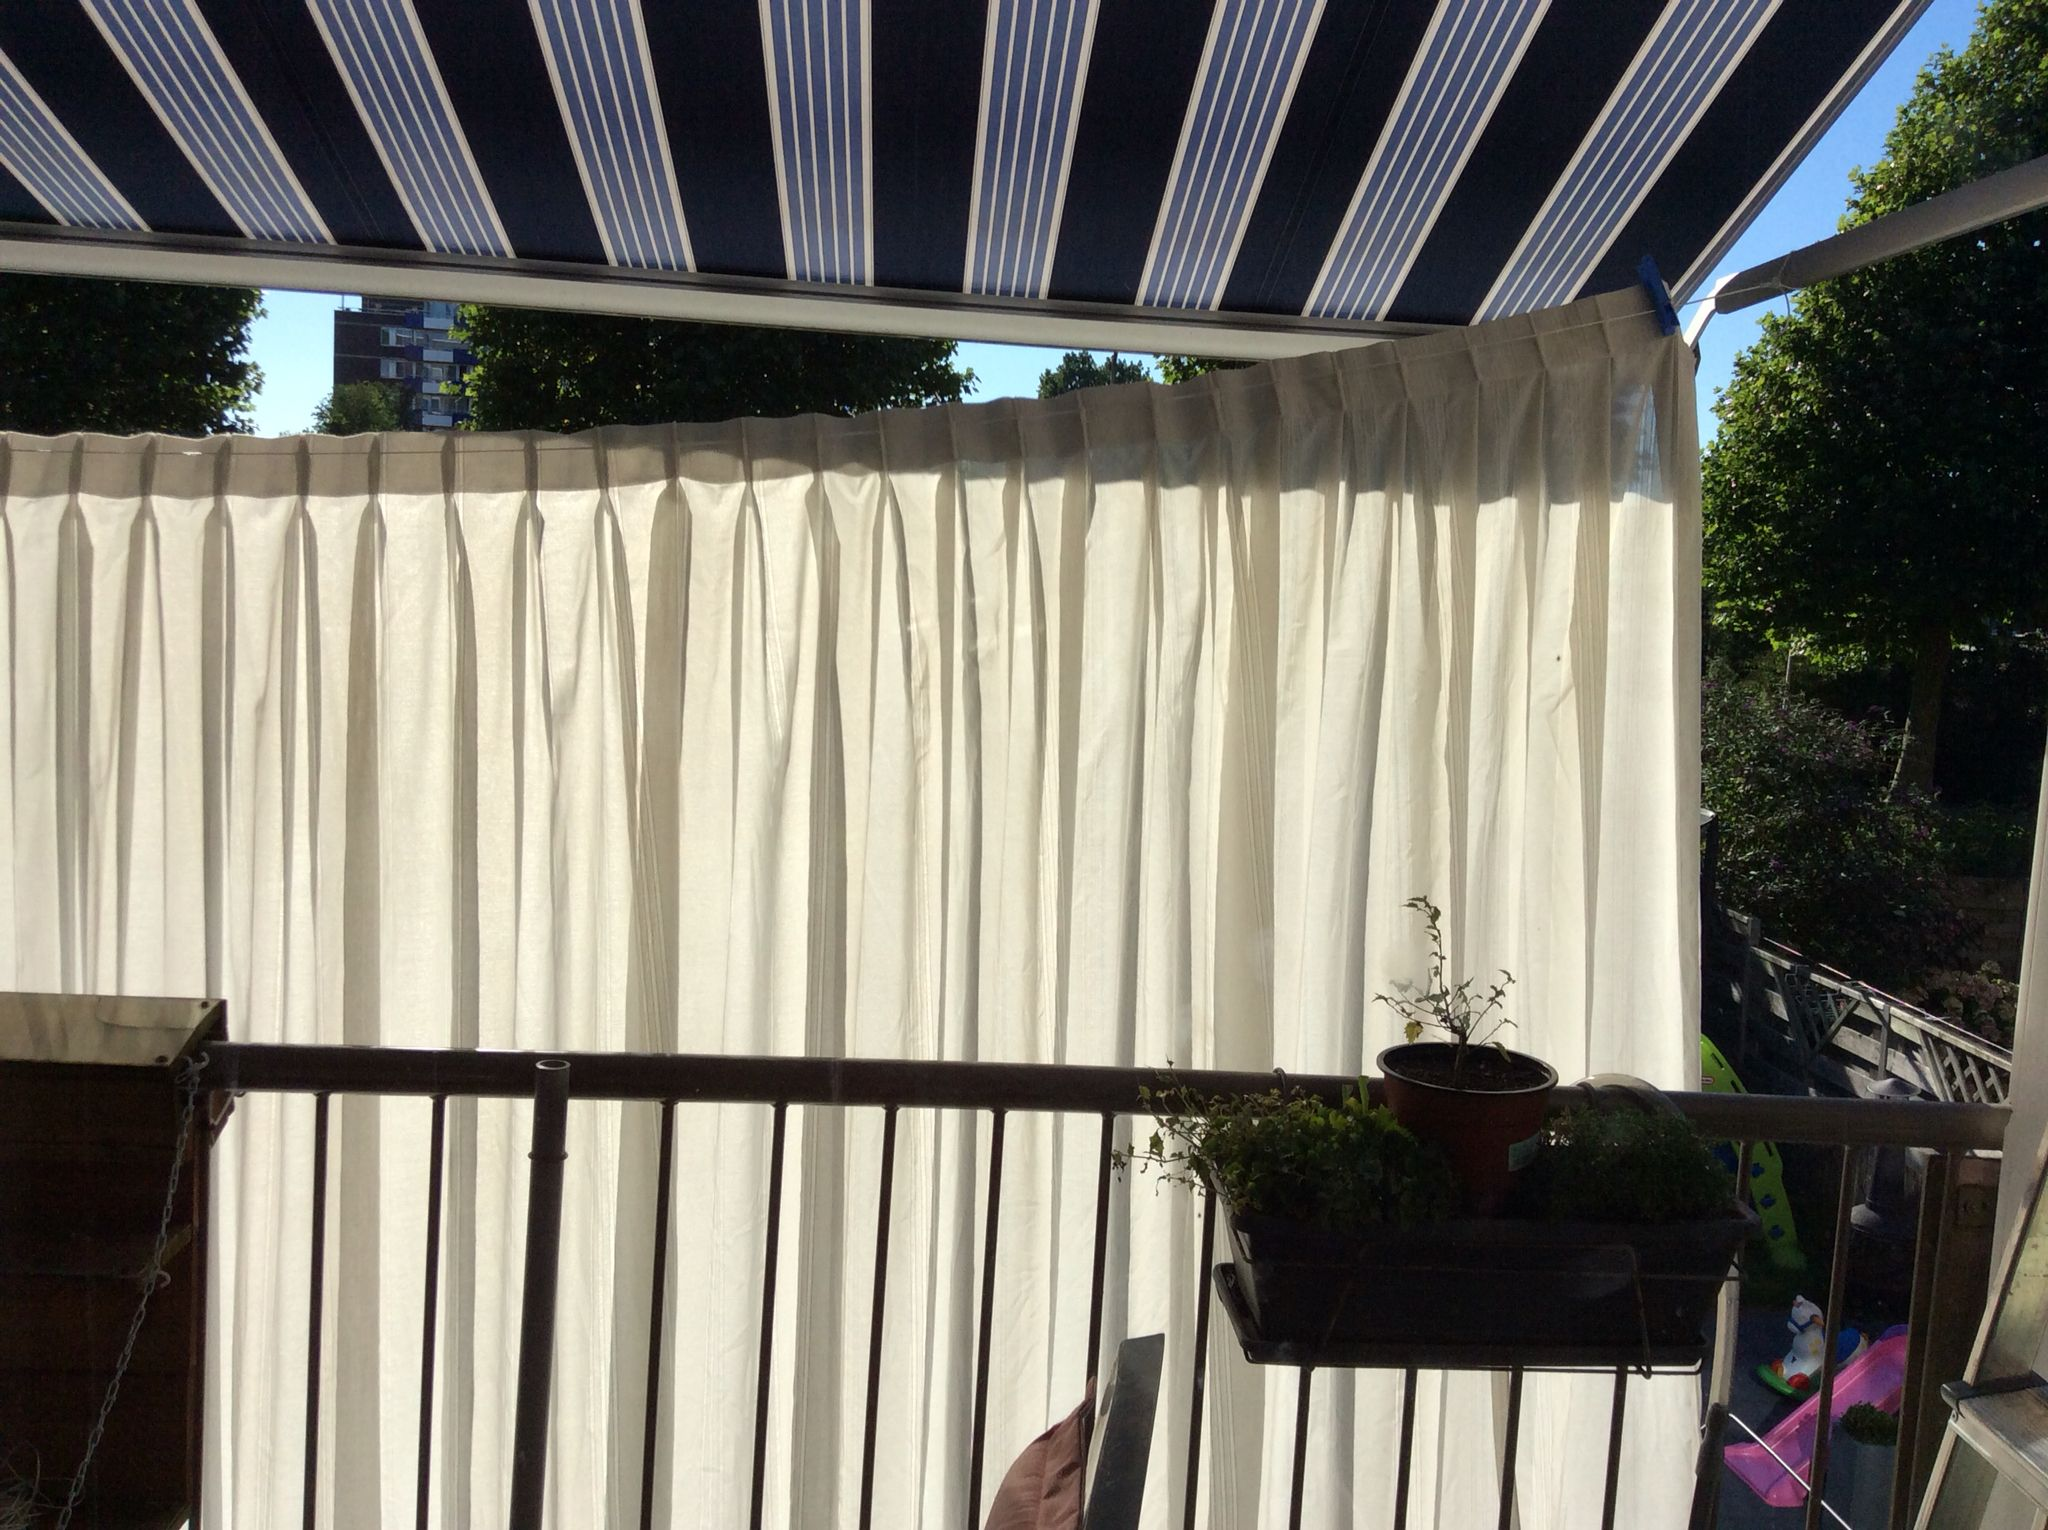 Dry your long curtains with a line on your sunscreen.